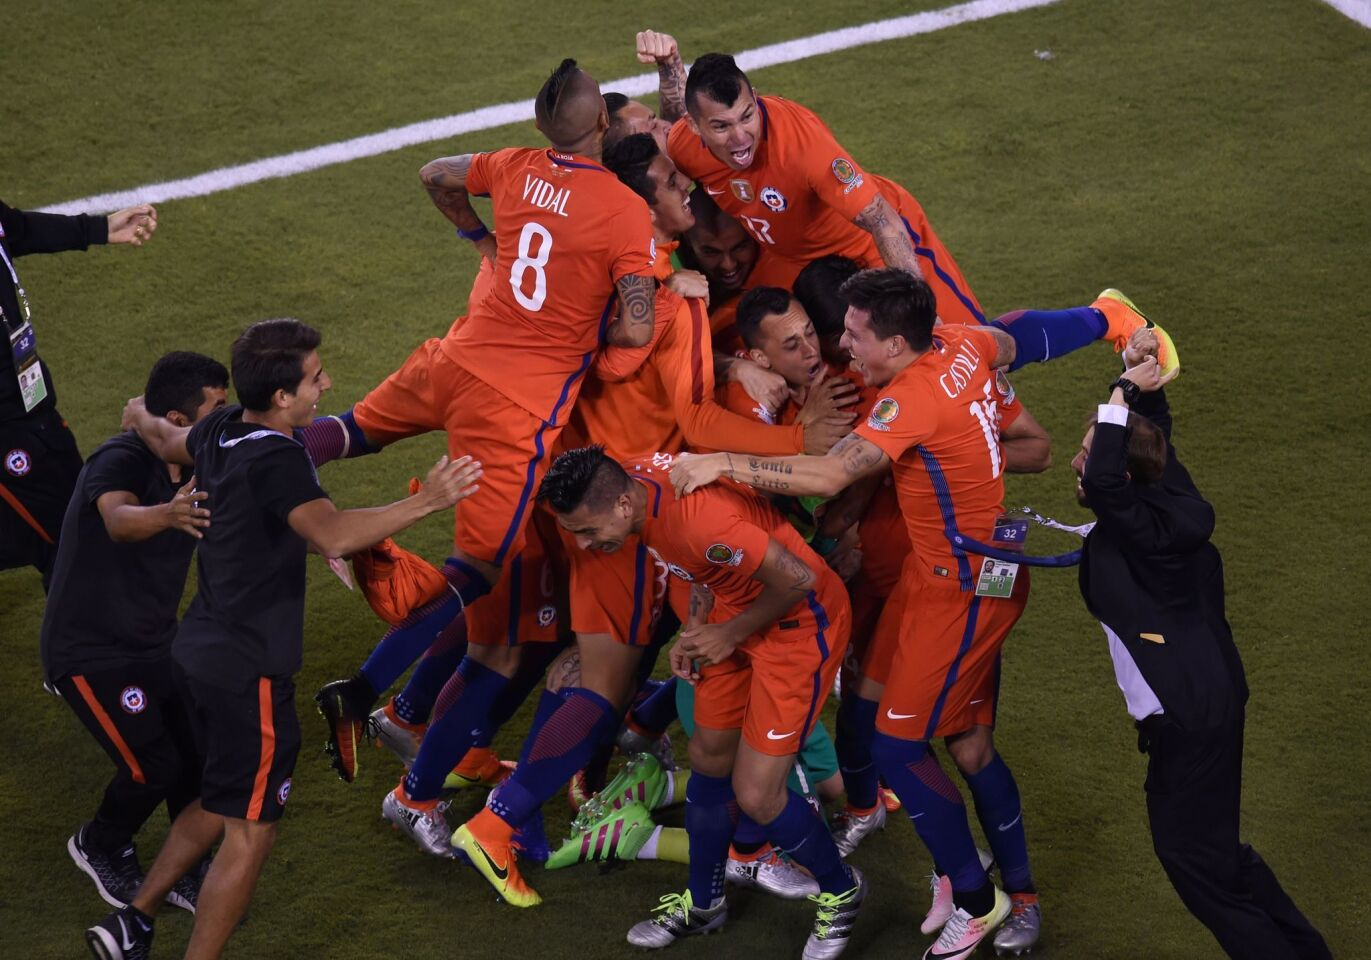 Chile's players celebrate after defeating Argentina in the penalty shoot-out and winning the Copa America Centenario final in East Rutherford, New Jersey, United States, on June 26, 2016. / AFP PHOTO / DON EMMERTDON EMMERT/AFP/Getty Images ** OUTS - ELSENT, FPG, CM - OUTS * NM, PH, VA if sourced by CT, LA or MoD **